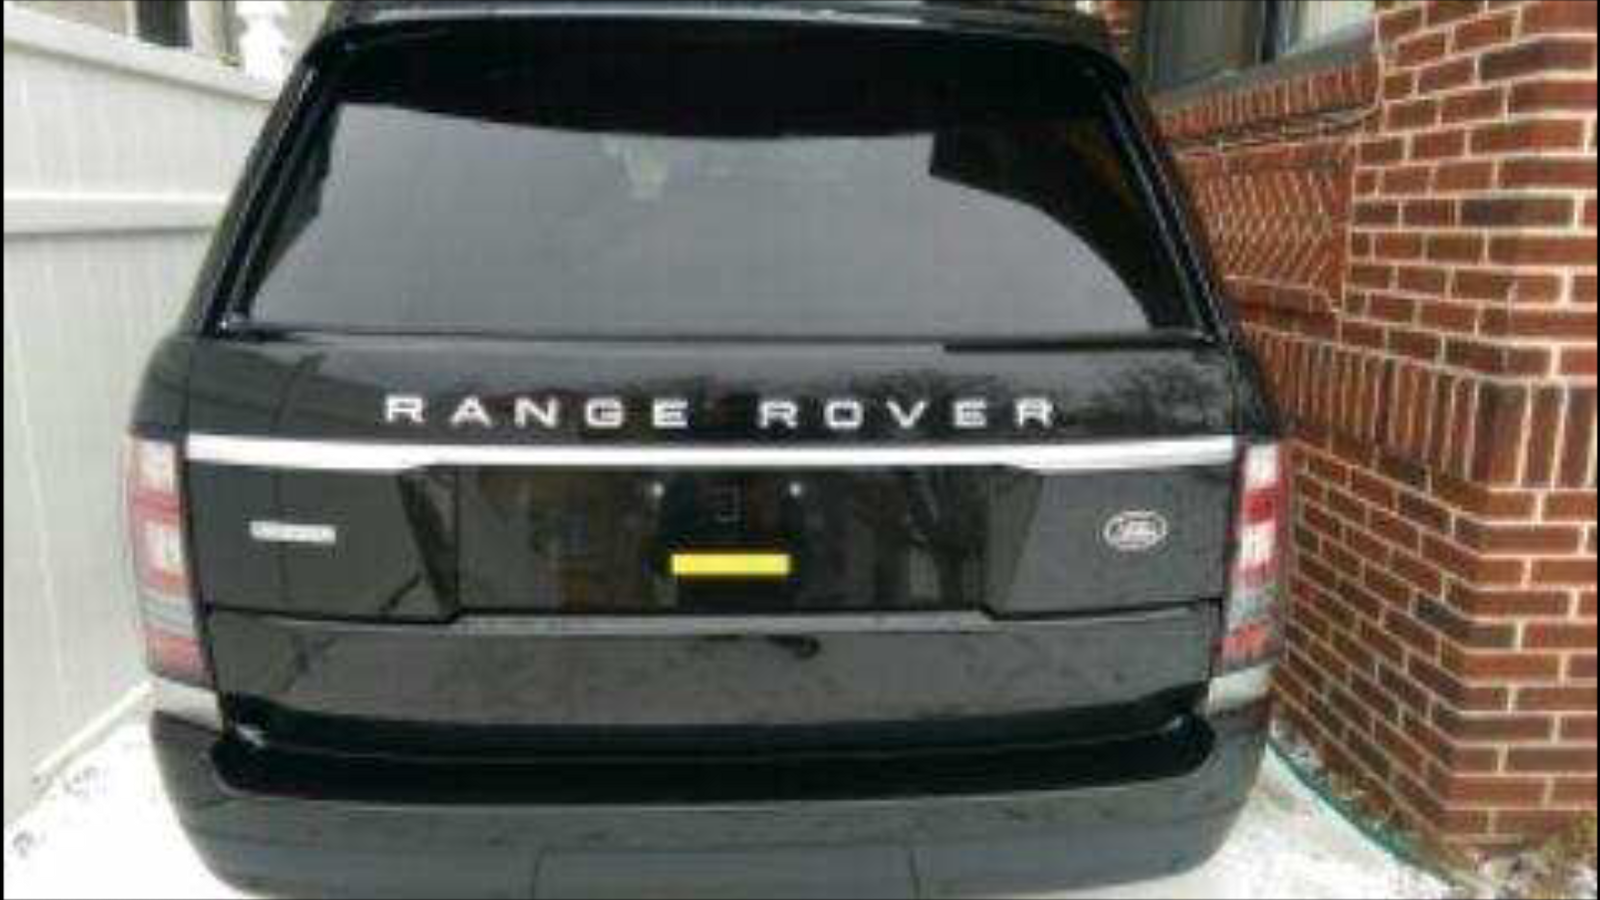 Range Rover Dealers In Ma >> New 2015 / 2016 Land Rover Range Rover For Sale - CarGurus